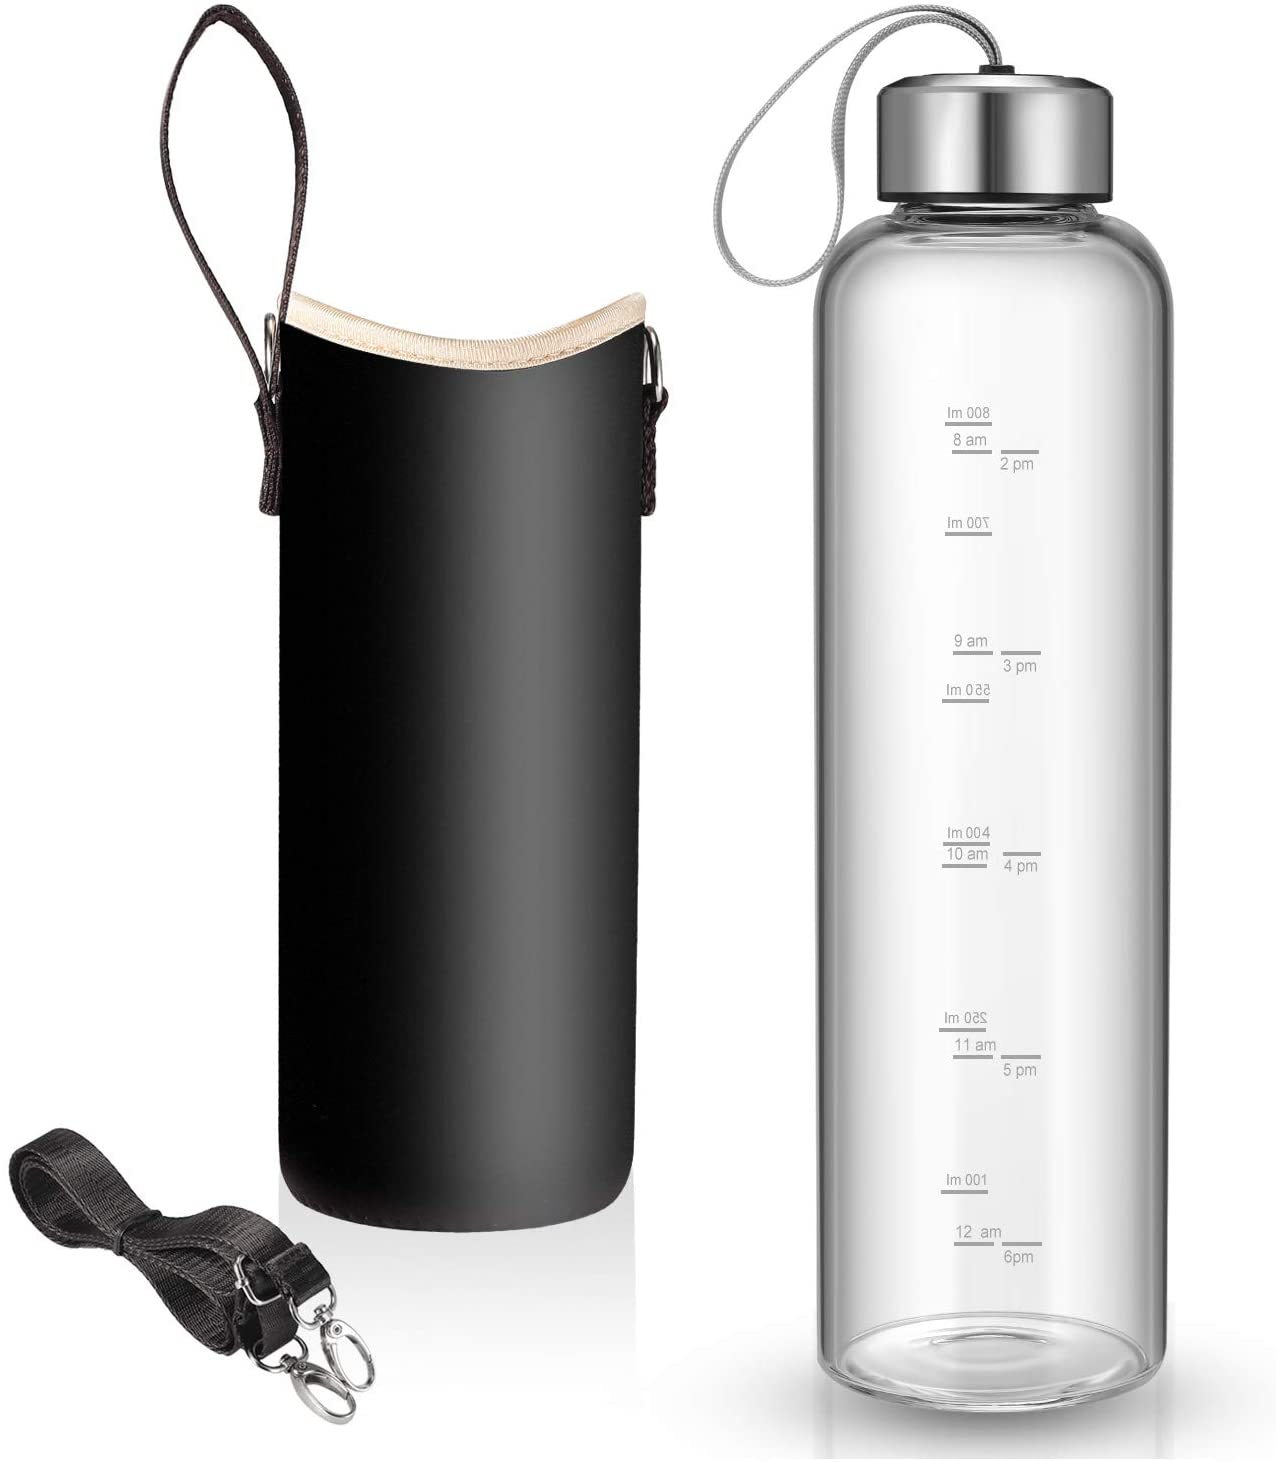 32 oz Glass Water Bottle with Nylon Bottle Protection Sleeves and Stainless Steel Lid 1L Time Marked Measurements Reusable Eco Friendly Safe for Hot Liquids Tea Coffee Daily